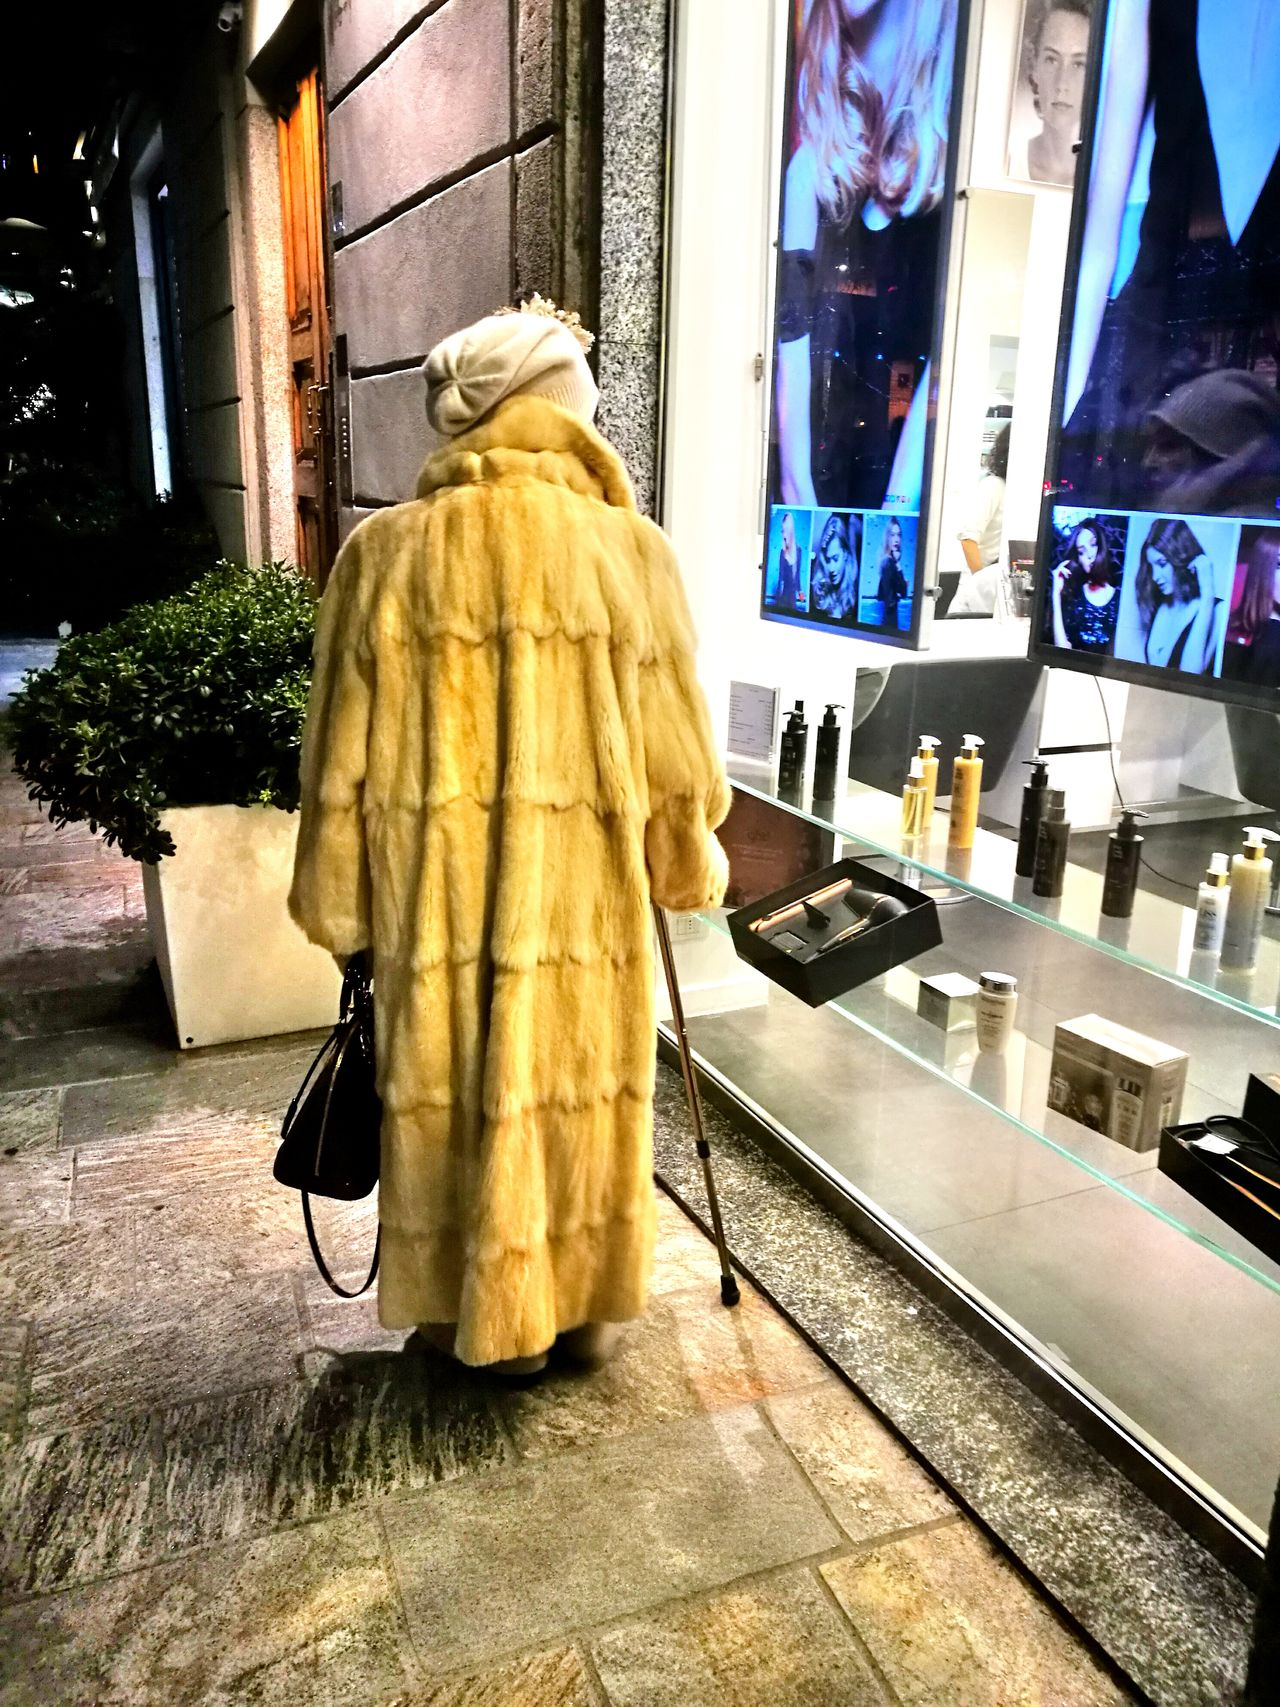 Built Structure Indoors  One Person People Women Lifestyles Outdoors My Year My View Always Be Cozy Exploring Style Nightlife Adult Aged Fur Walking Walking Cane Old Woman Back View